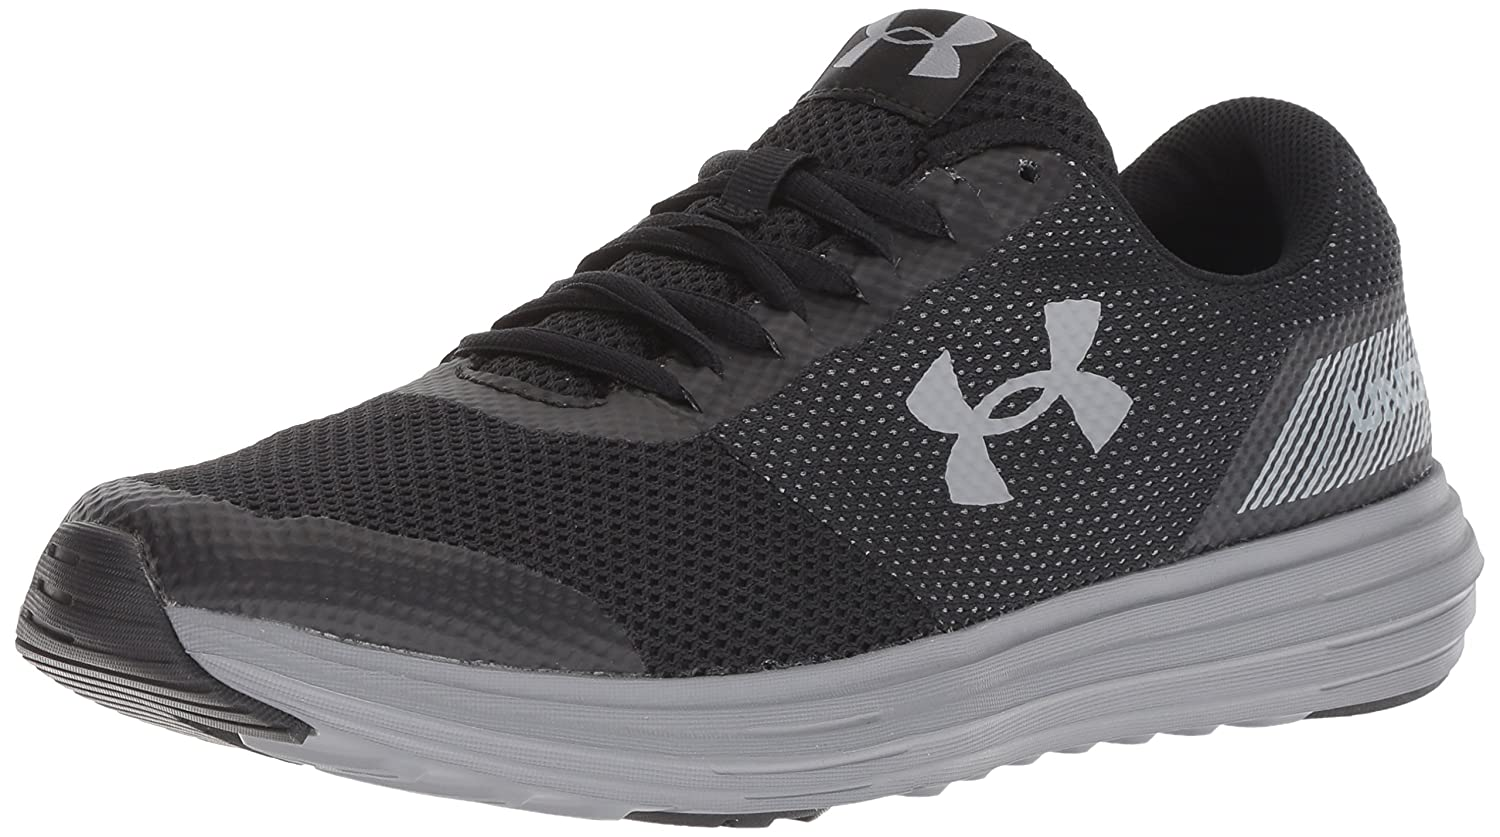 Under Armour Herren Ua Surge Laufschuhe  | Erlesene Materialien